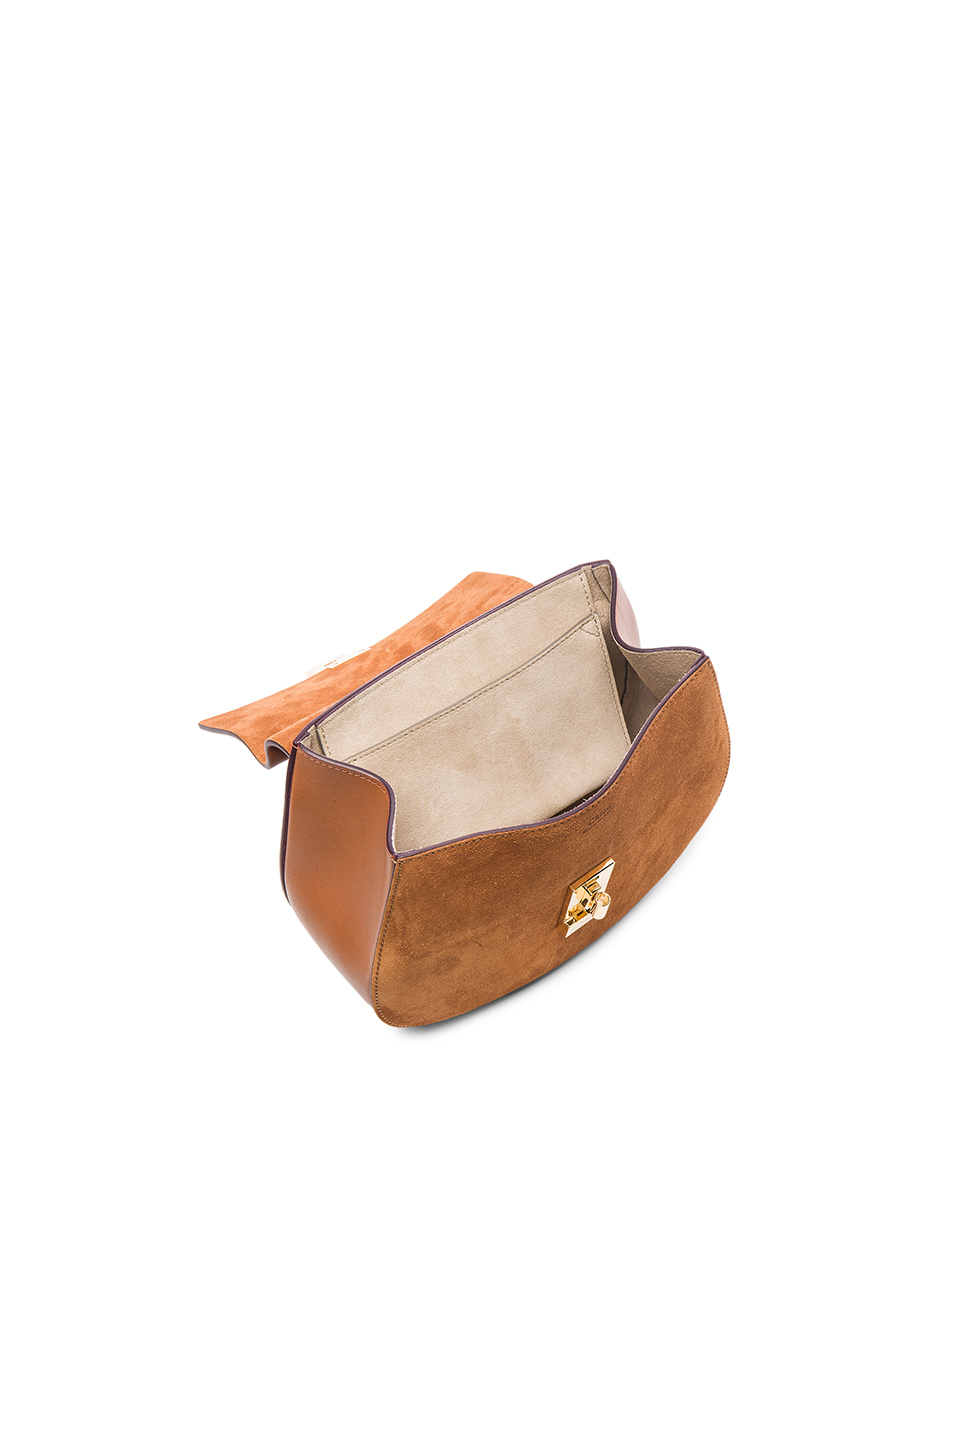 DREW BAG IN SUEDE CALFSKIN AND SMOOTH CALFSKIN